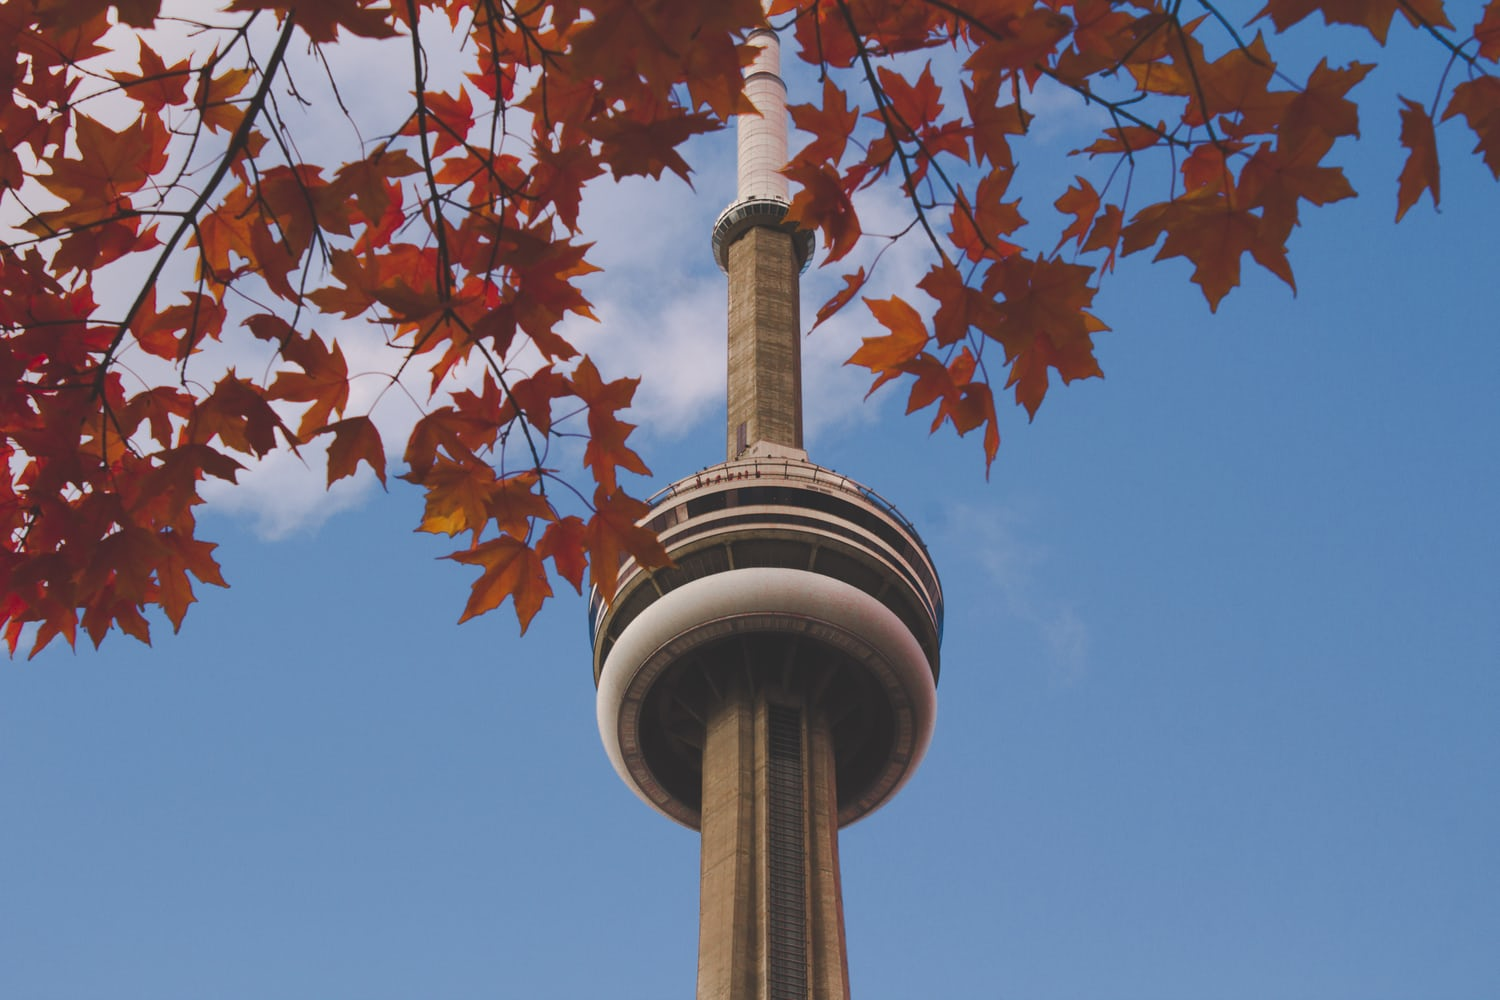 CN Tower, Canada | Nadine Shaabana on Unsplash